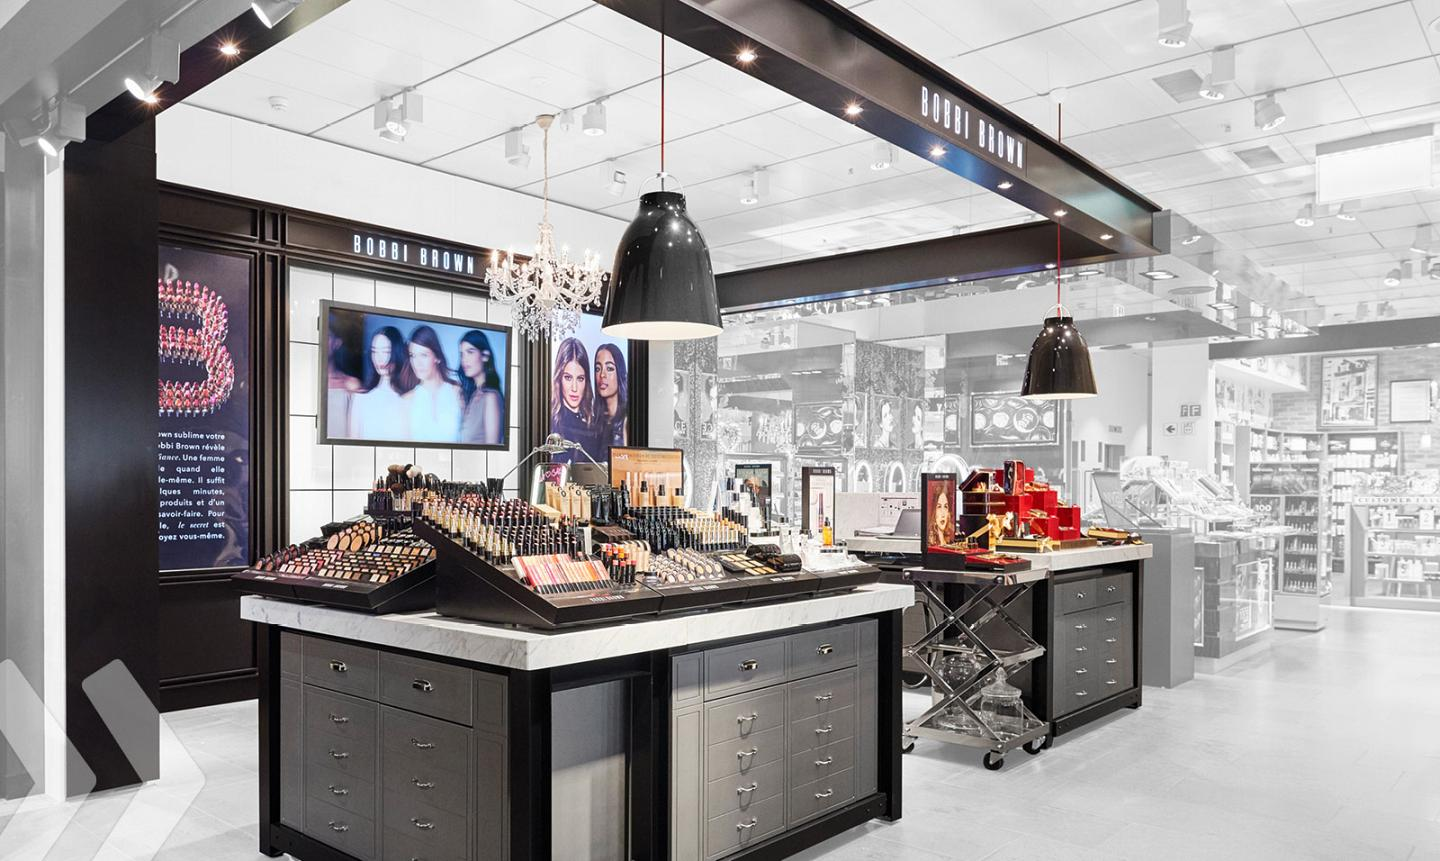 Bobbi Brown Shop in Shop 02